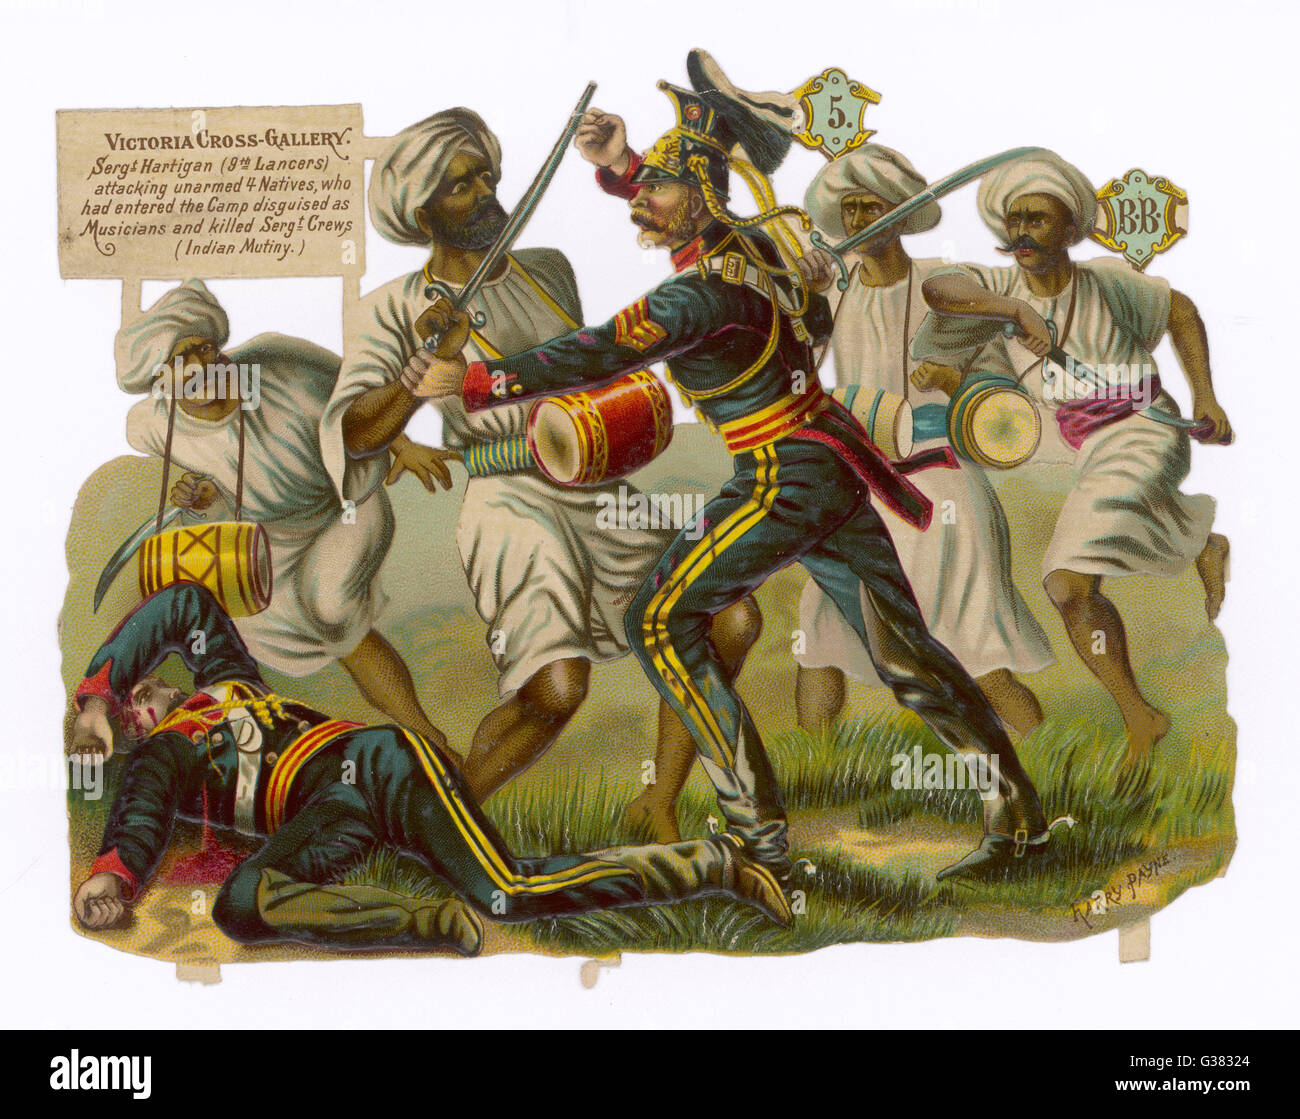 Sgt.Hartigan of the 9th  Lancers, unarmed, attacks four murderous rebels  disguised as itinerant musicians. He was - Stock Image